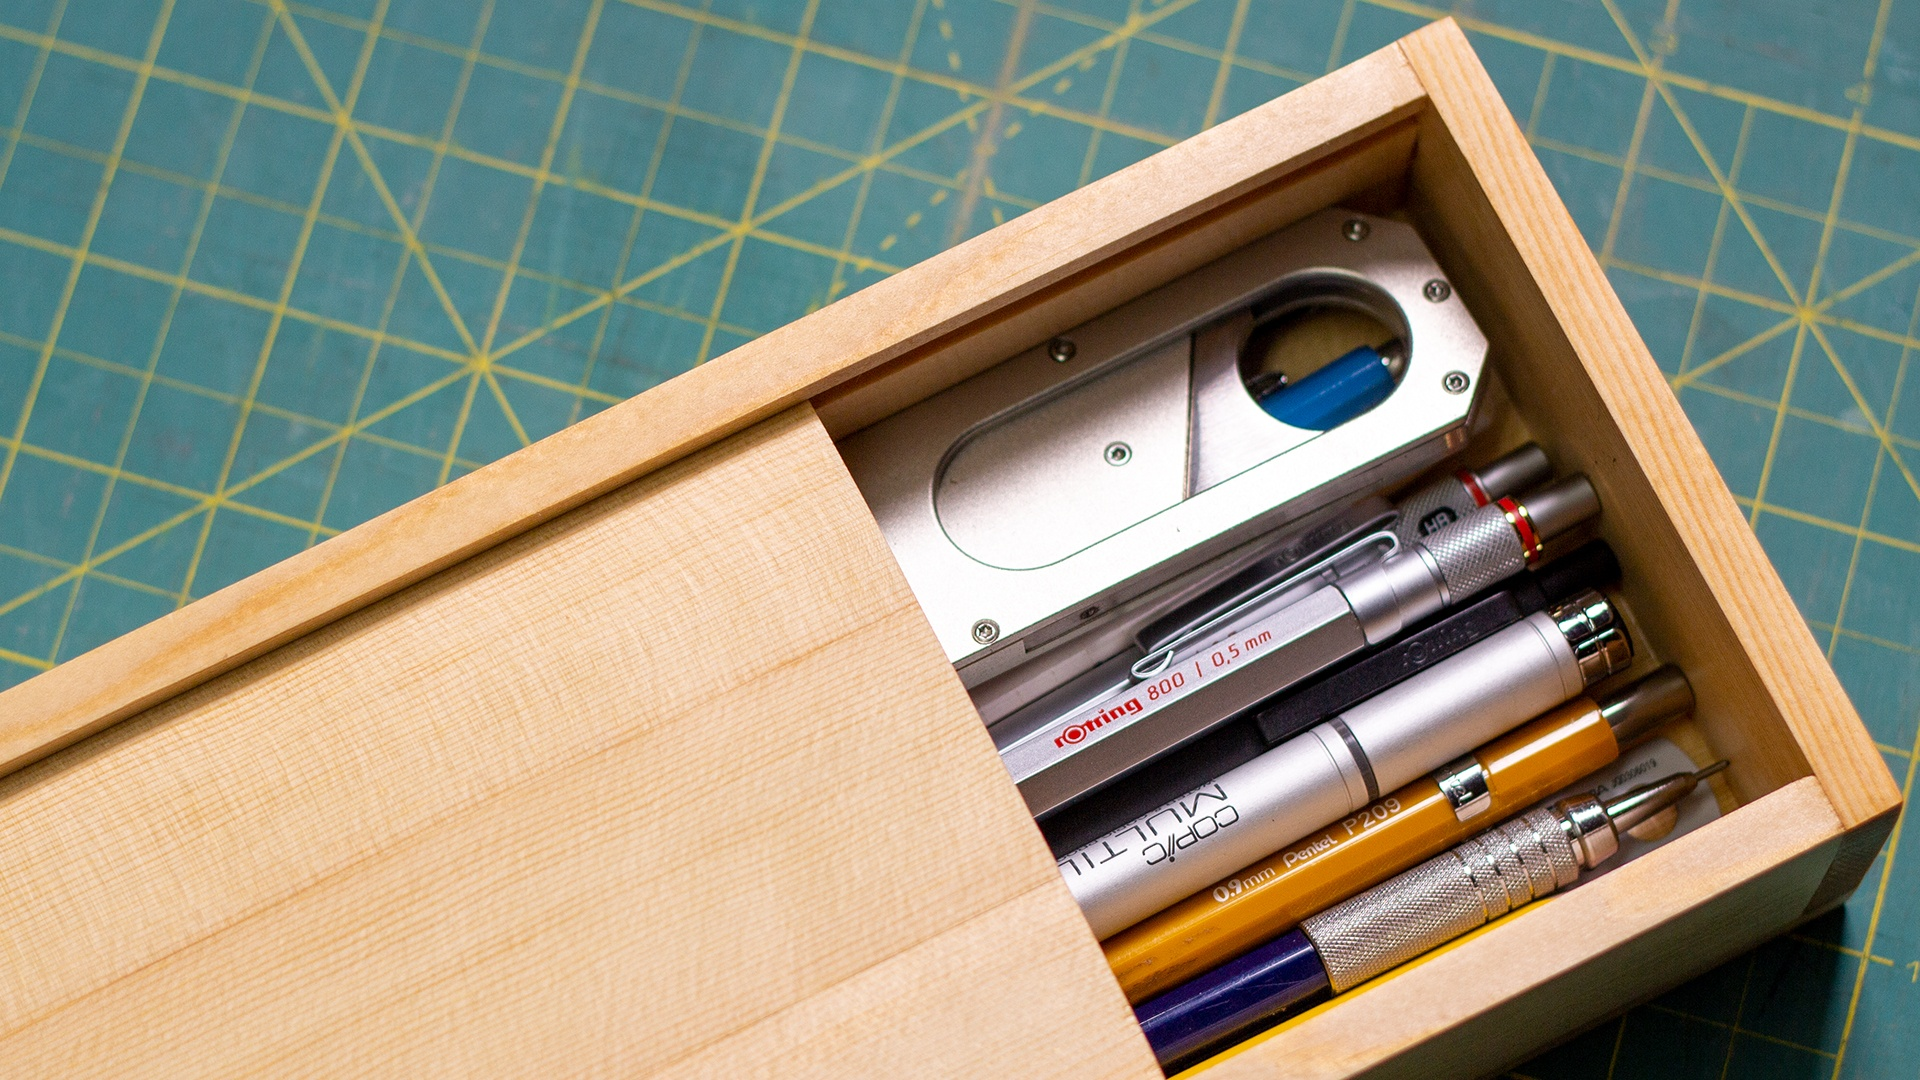 Pencil box made from recycled 2 by 4 lumber